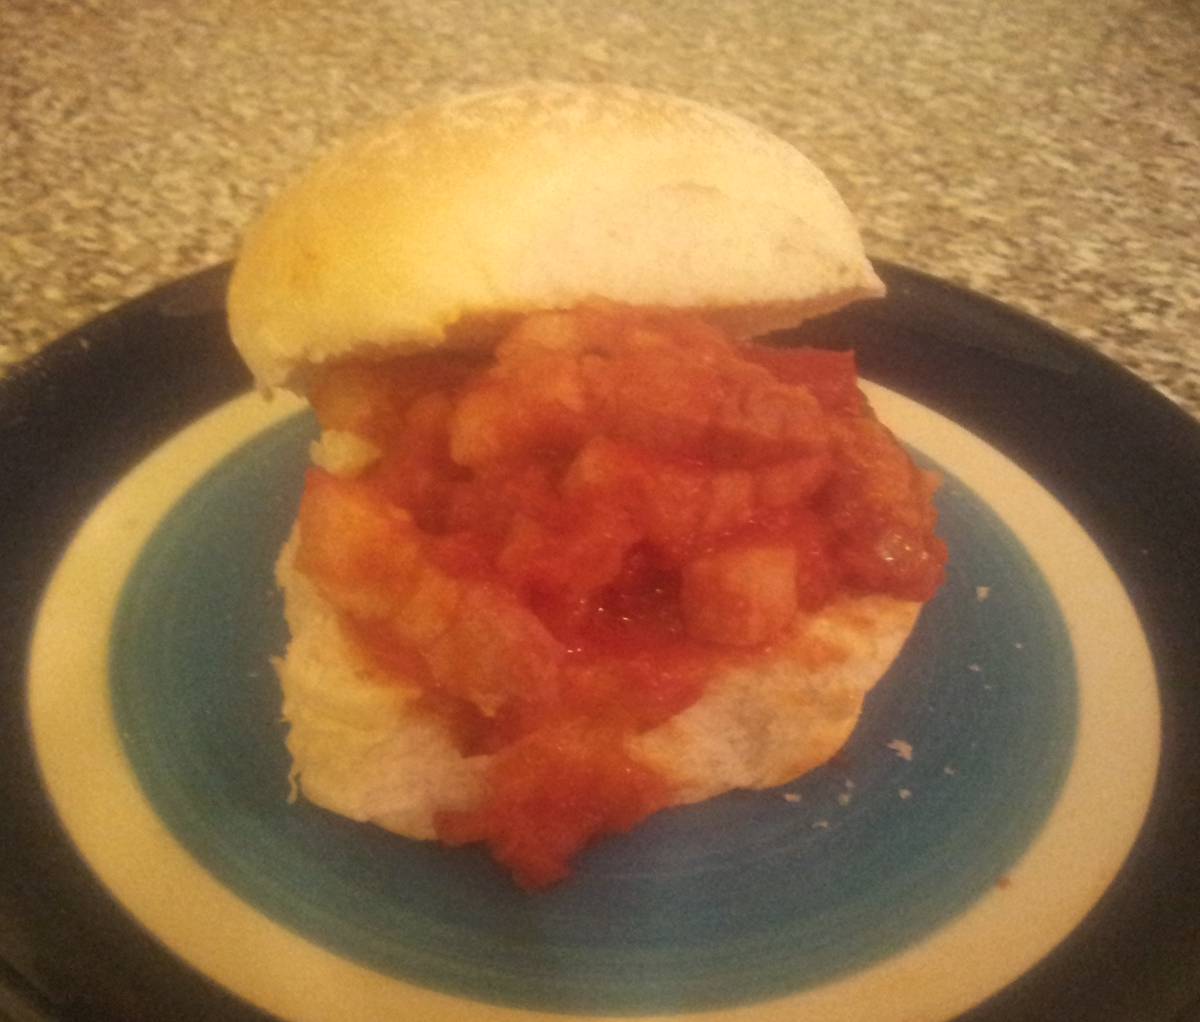 Seriously, guys, you owe it yourselves to try this bacon sandwich recipe.  https://makeupandmirtazapine.com/2014/03/30/the-fancy-way-to-make-a-bacon-sandwich/ #recipe #girlgang